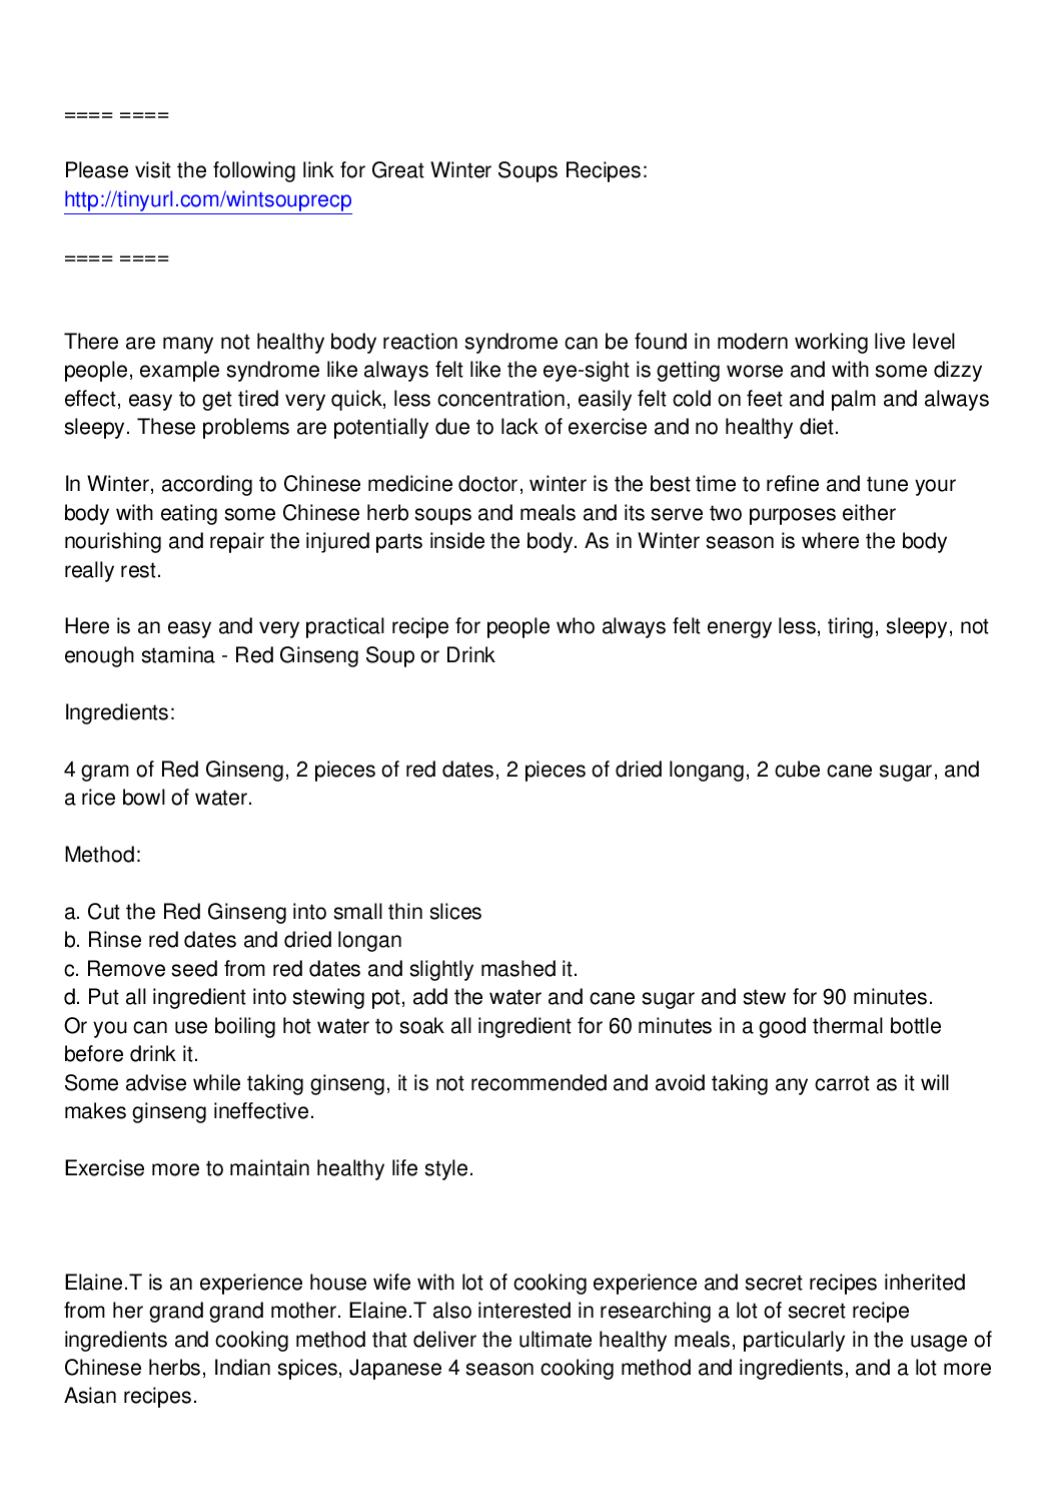 Winter Soup Recipe For Busy Working People by Ramesh